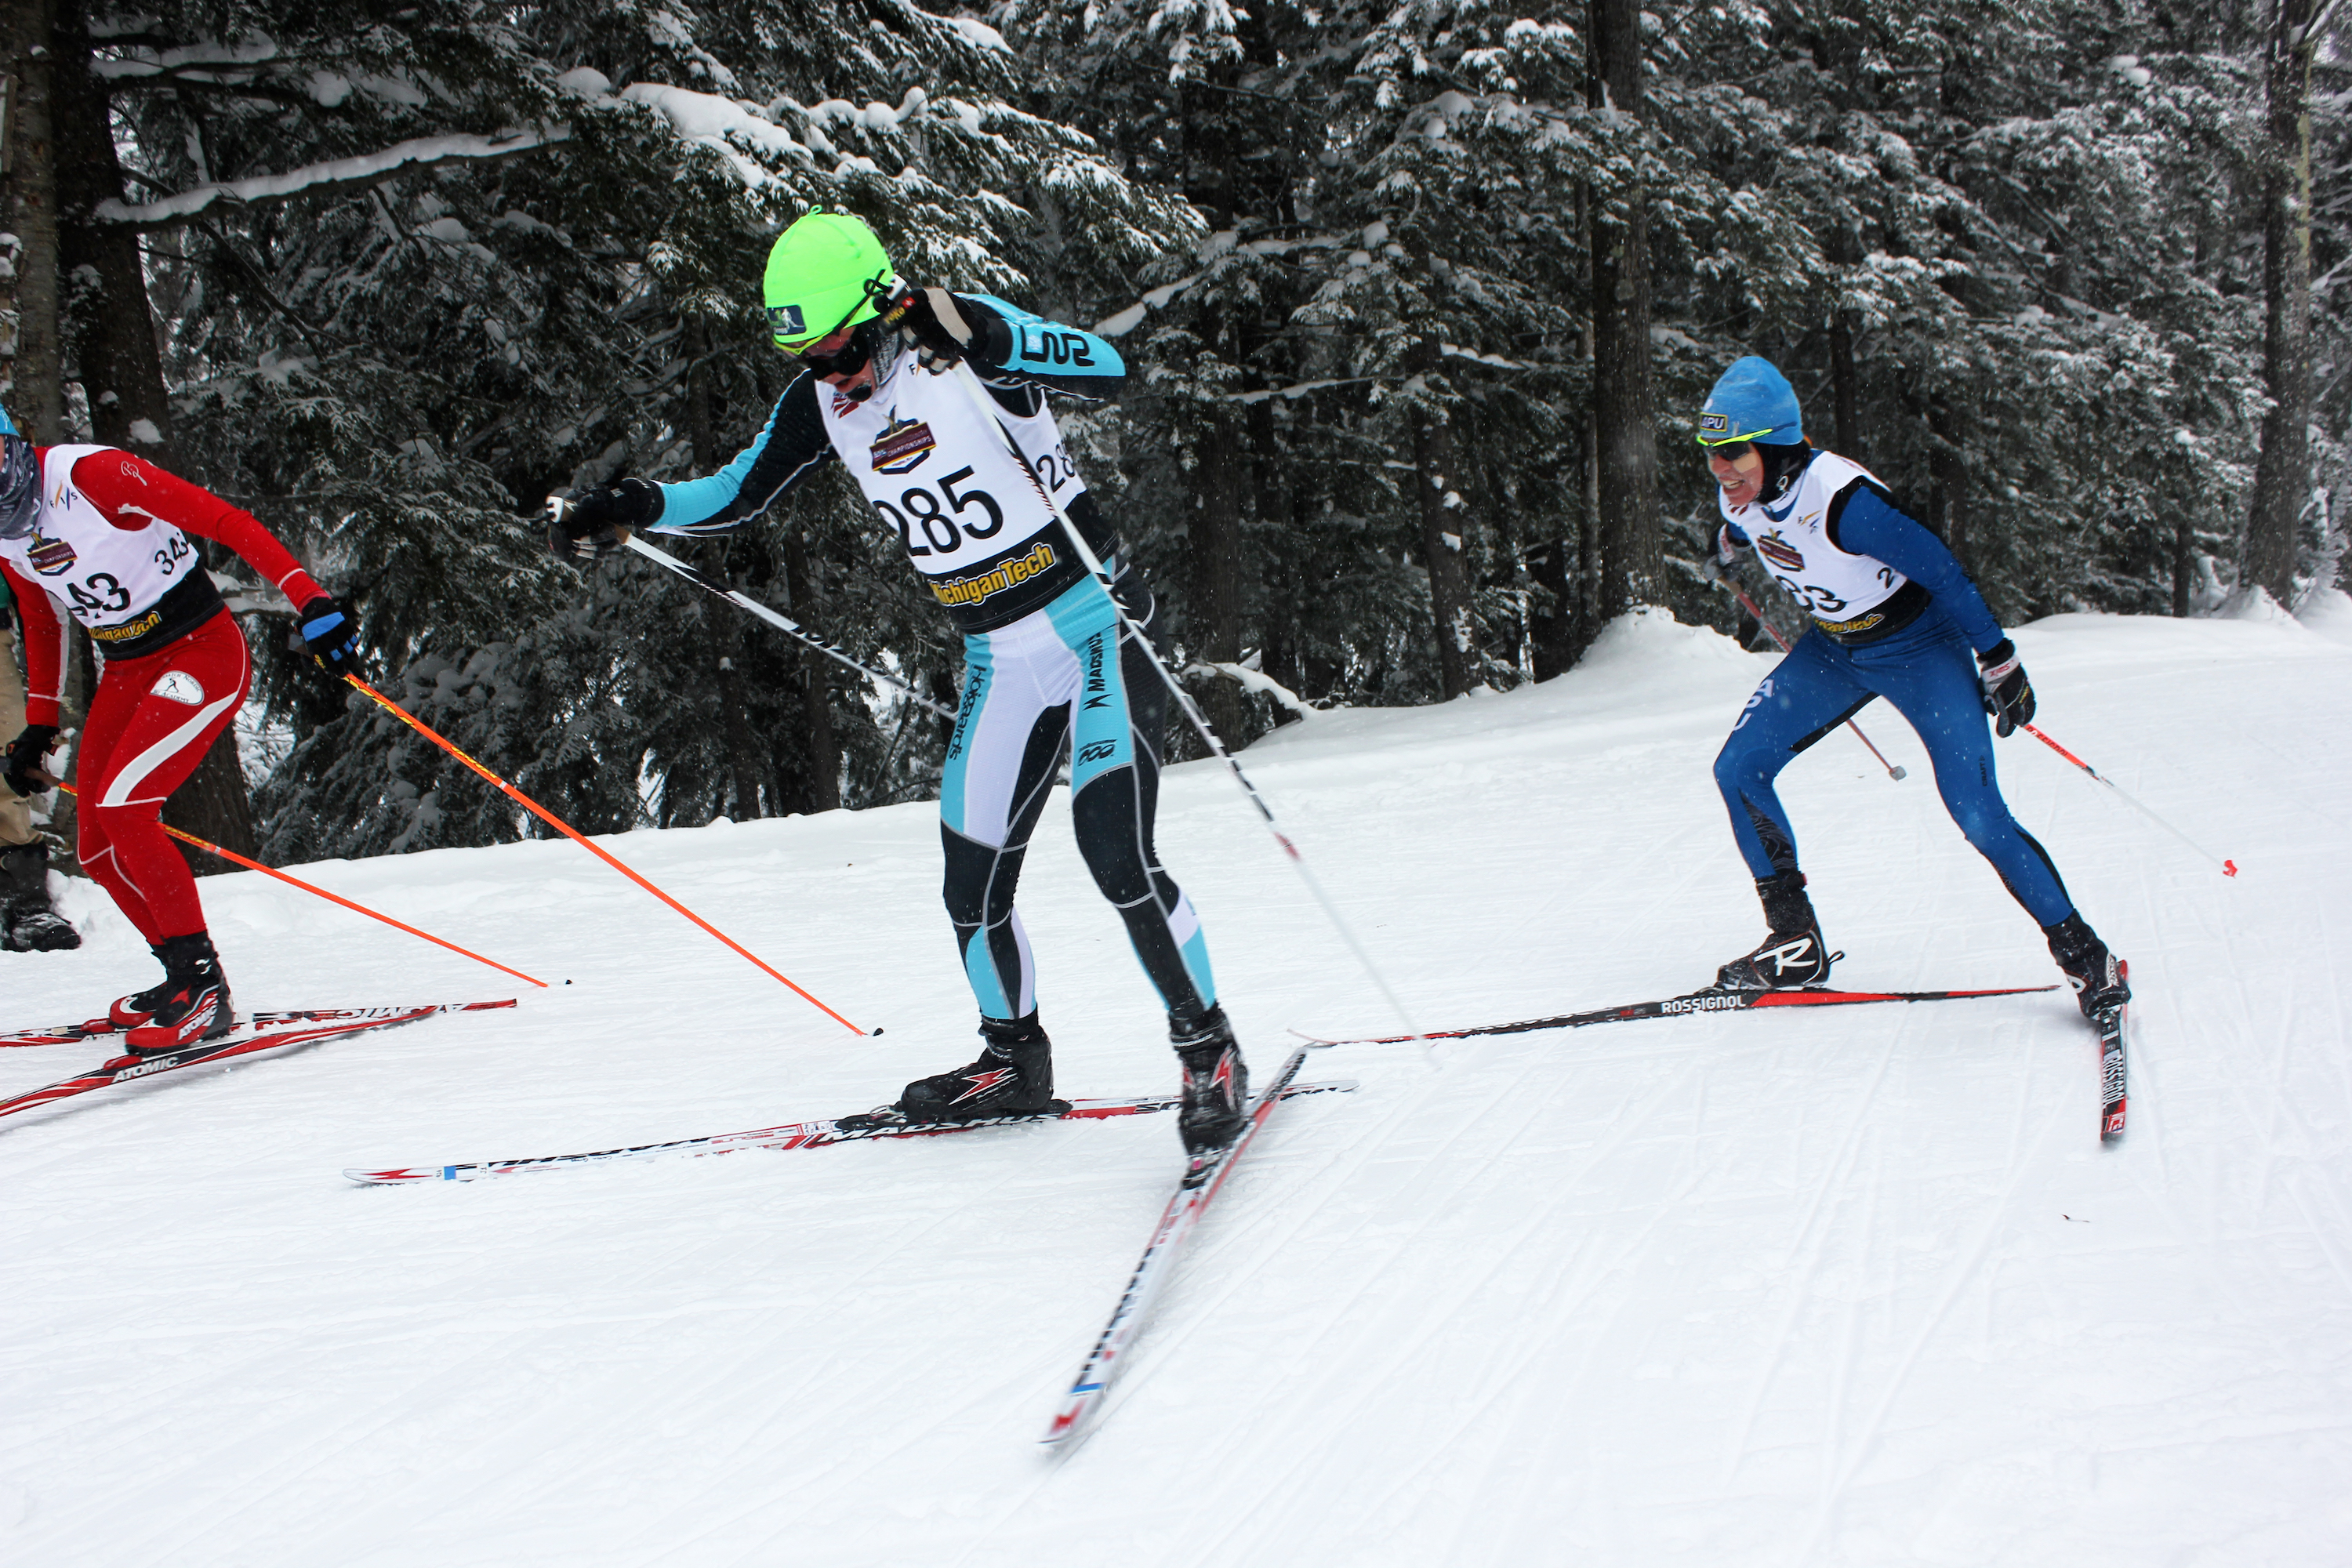 Caitlin Gregg (l) of Team Gregg/Madshus leads Rosie Brennan (r) of APU on in the final lap of the 10 k freestyle at the 2015 U.S. Cross Nation Championships in Houghton, Mich. Gregg won the race, even though Brennan earned third spot.